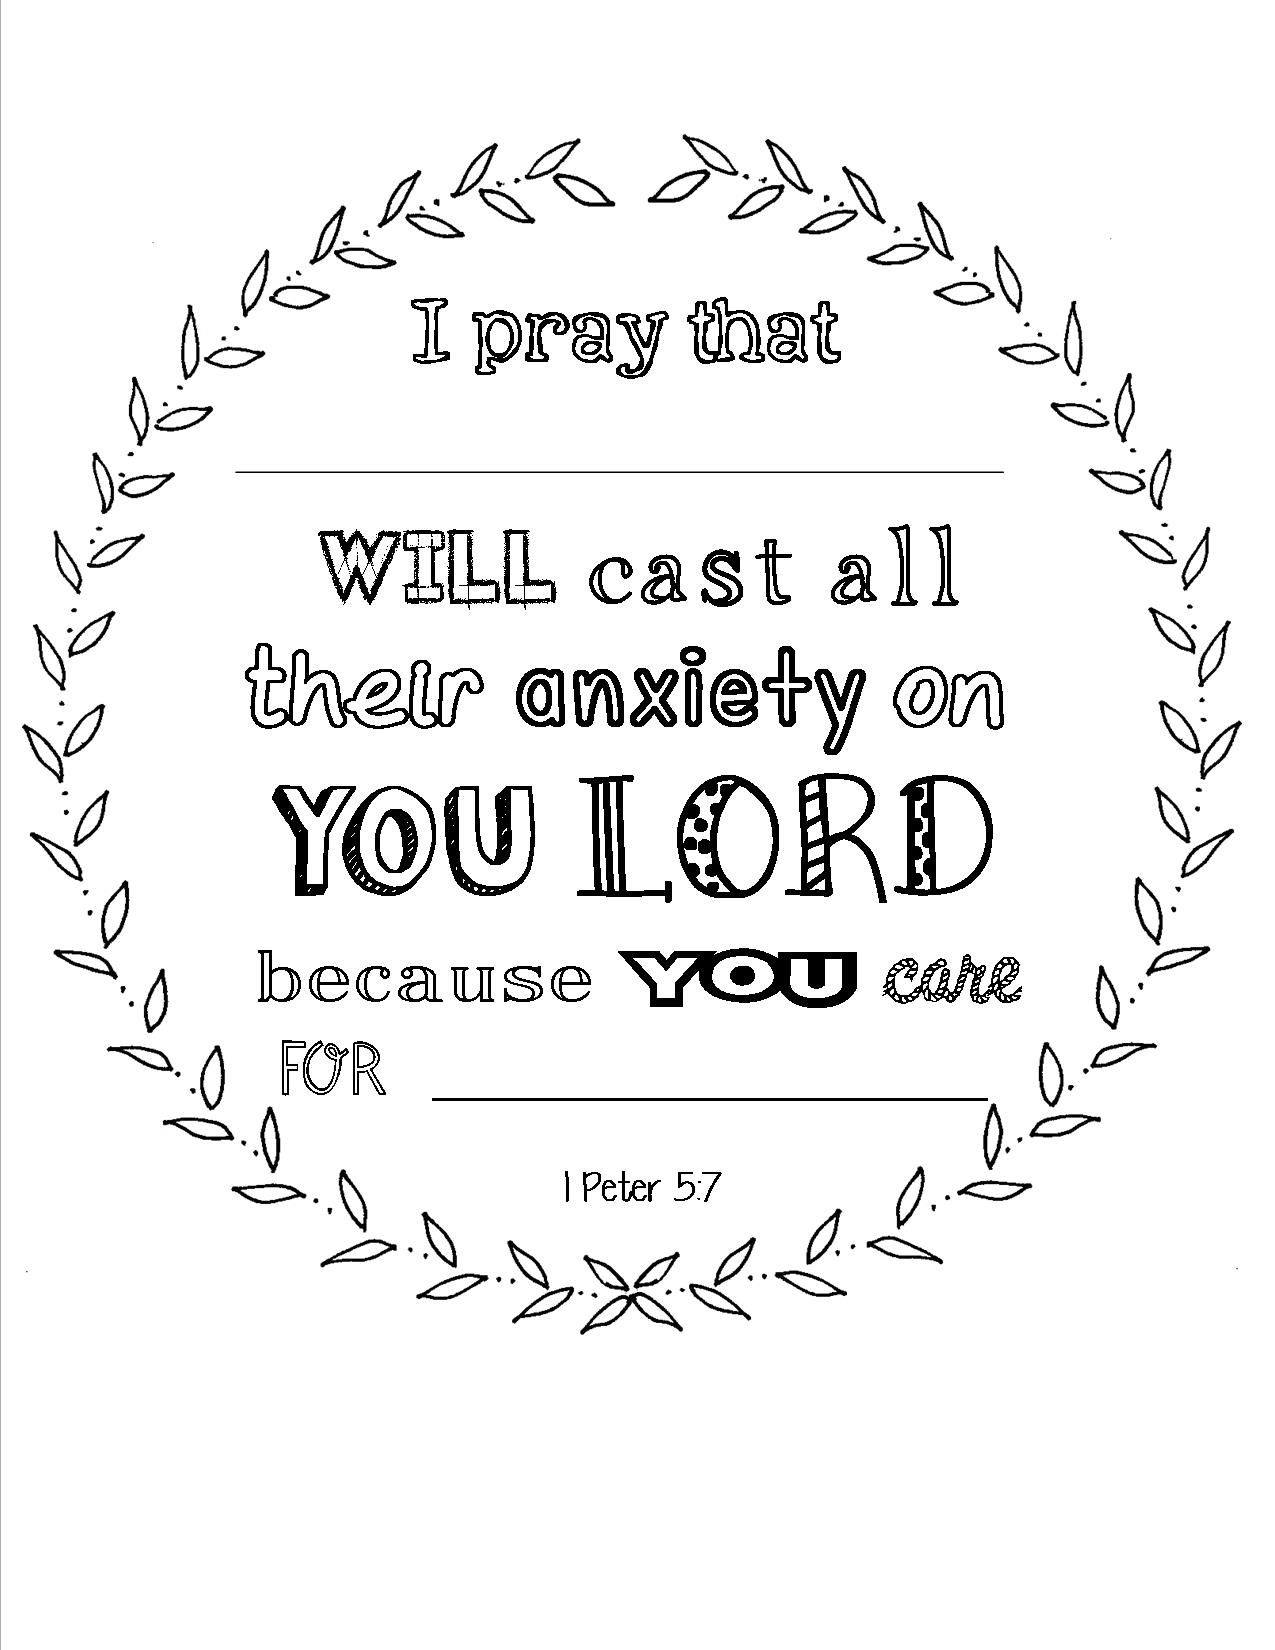 Scripture Coloring Page I Peter 5 7 With Place To Personalize Used At A Woman S Bible Study Luncheon Coloring Book Pages Womens Bible Study Coloring Books